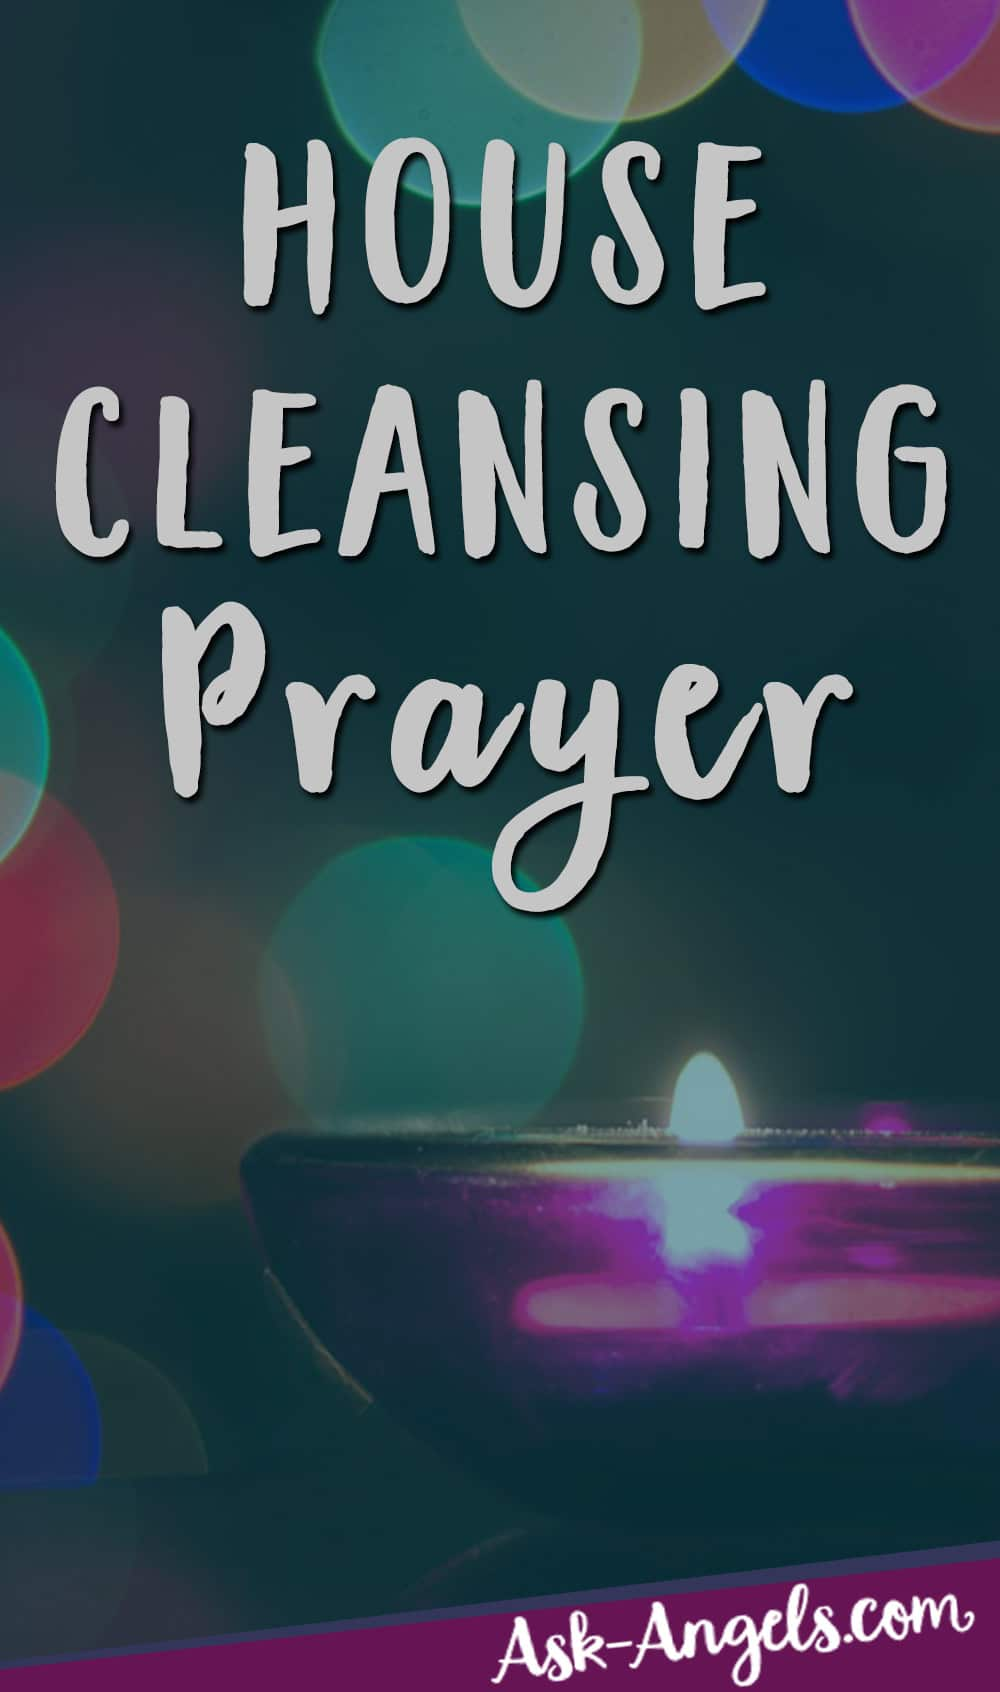 Spiritual Cleansing Prayer To Eliminate Negativity And Bring In The Highest Vibrations Of Light Love House